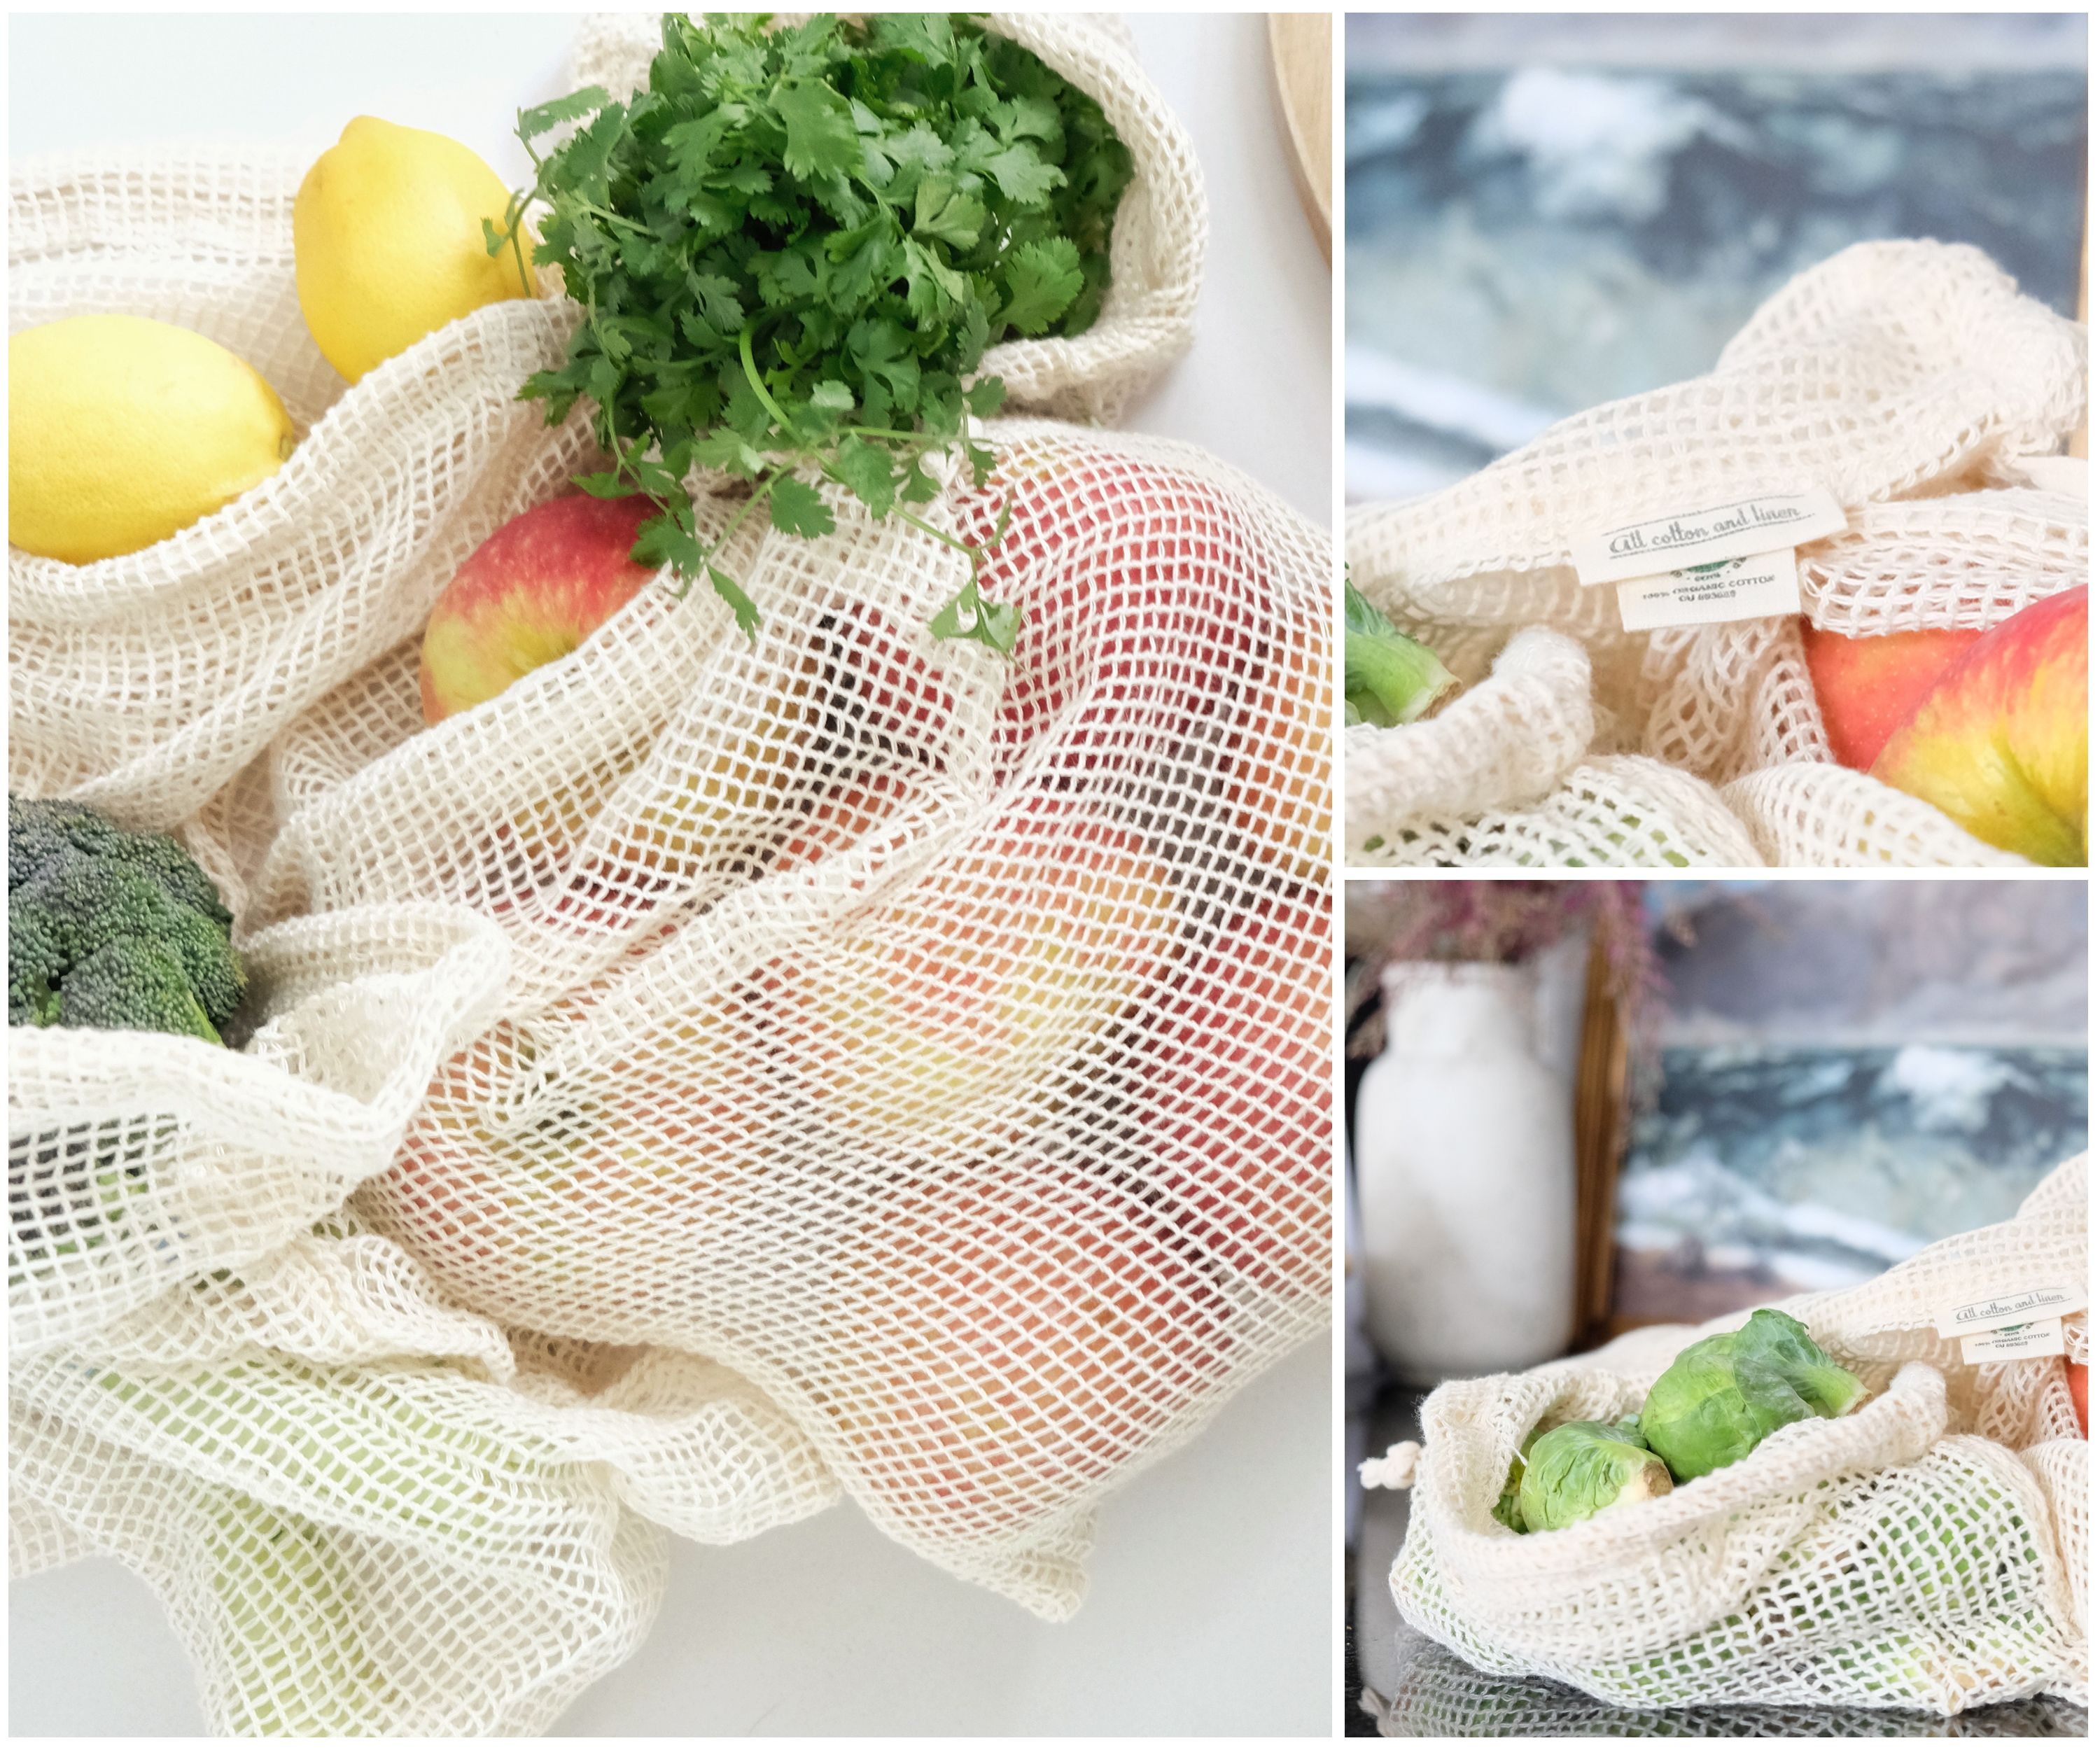 Mesh Cotton Bags Reusable Produce Bags Produce Bags Sustainable Gifts